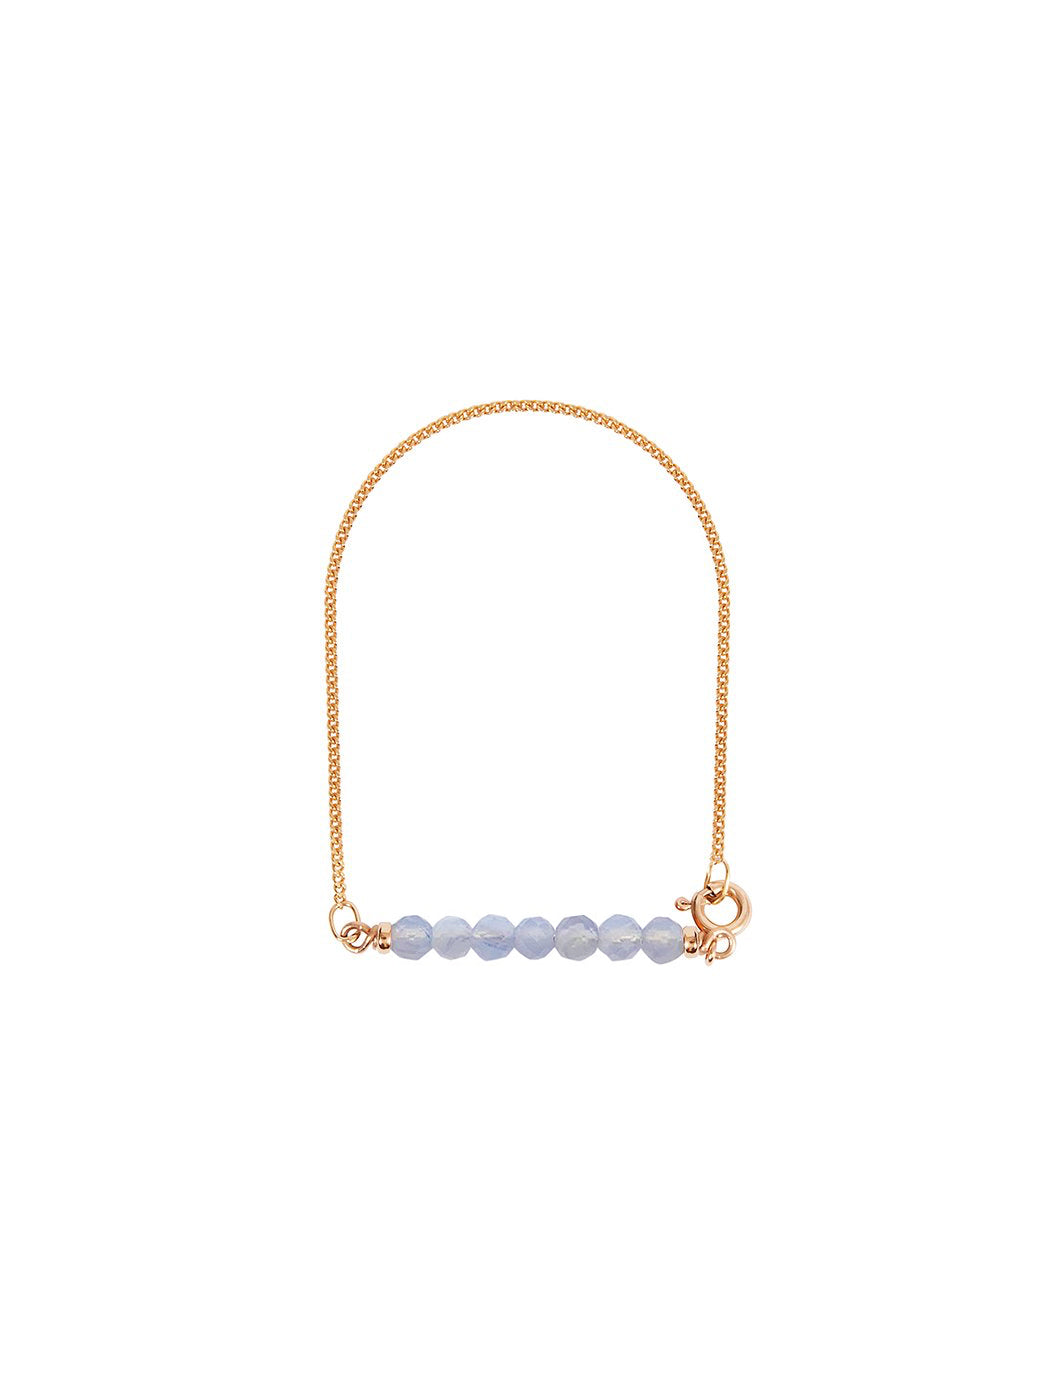 Fiorina Jewellery Gold Friendship Bracelet Chalcedony